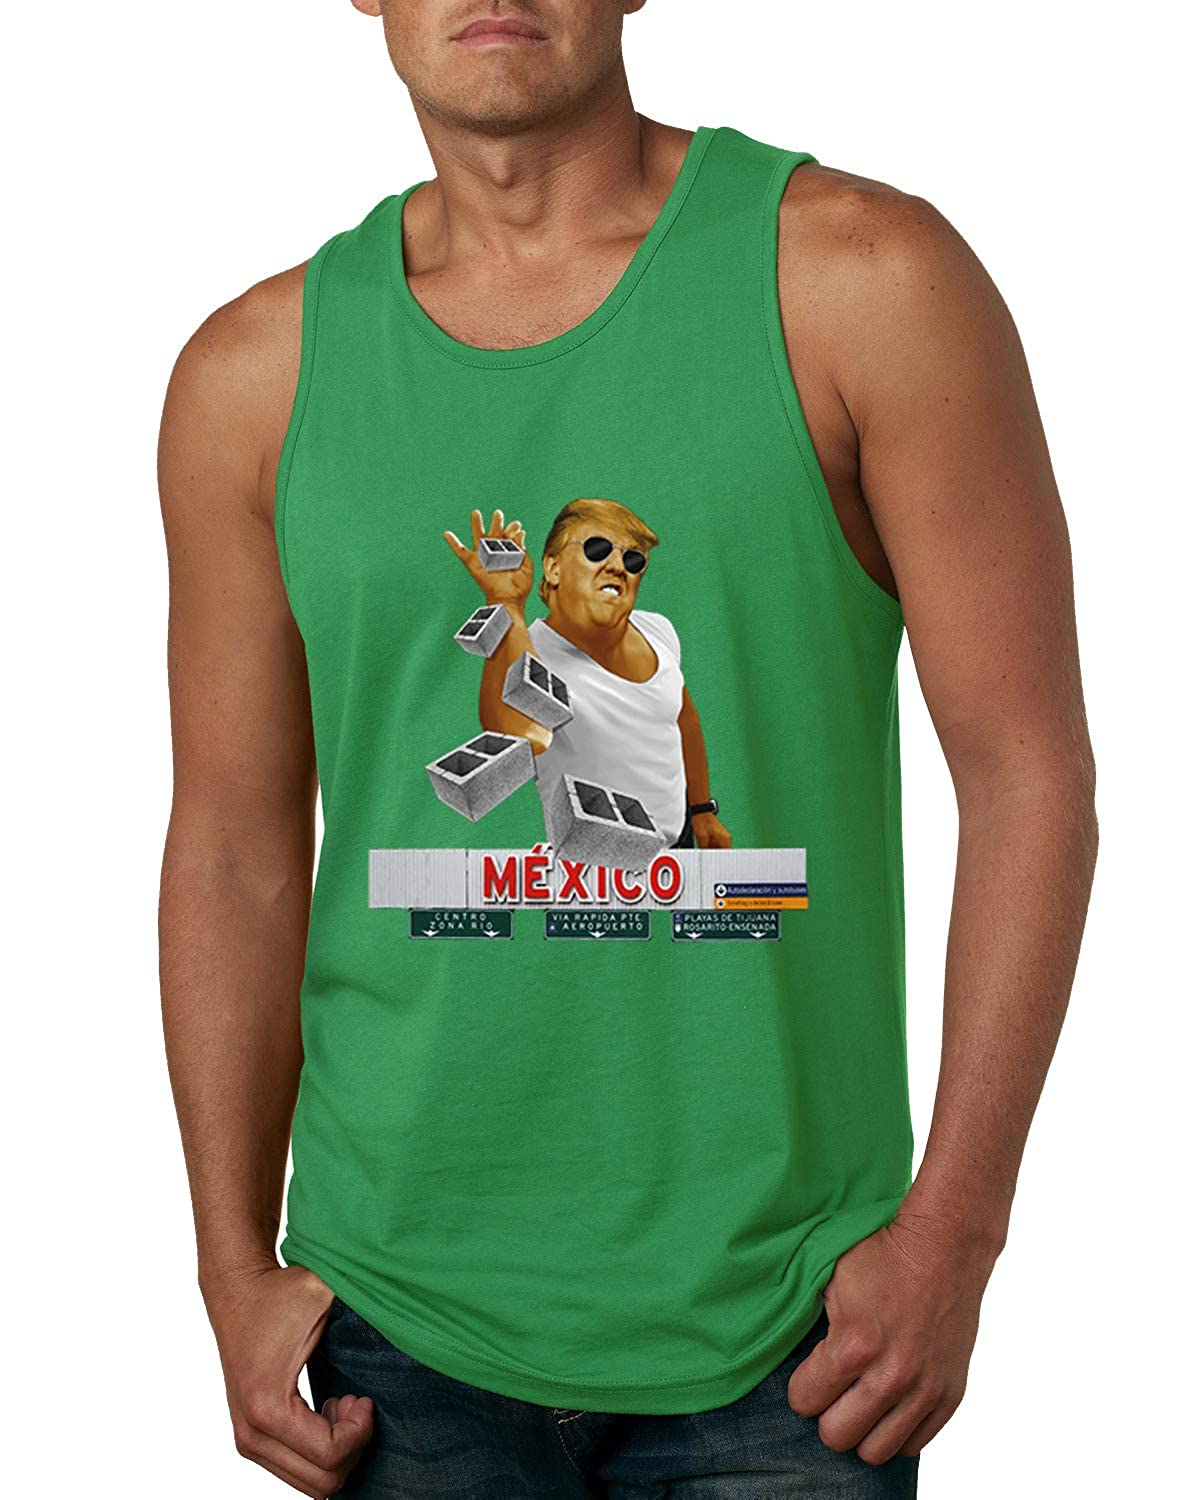 Mens Humor Graphic Tank Top Trump Salt Bae Wall Funny Offensive